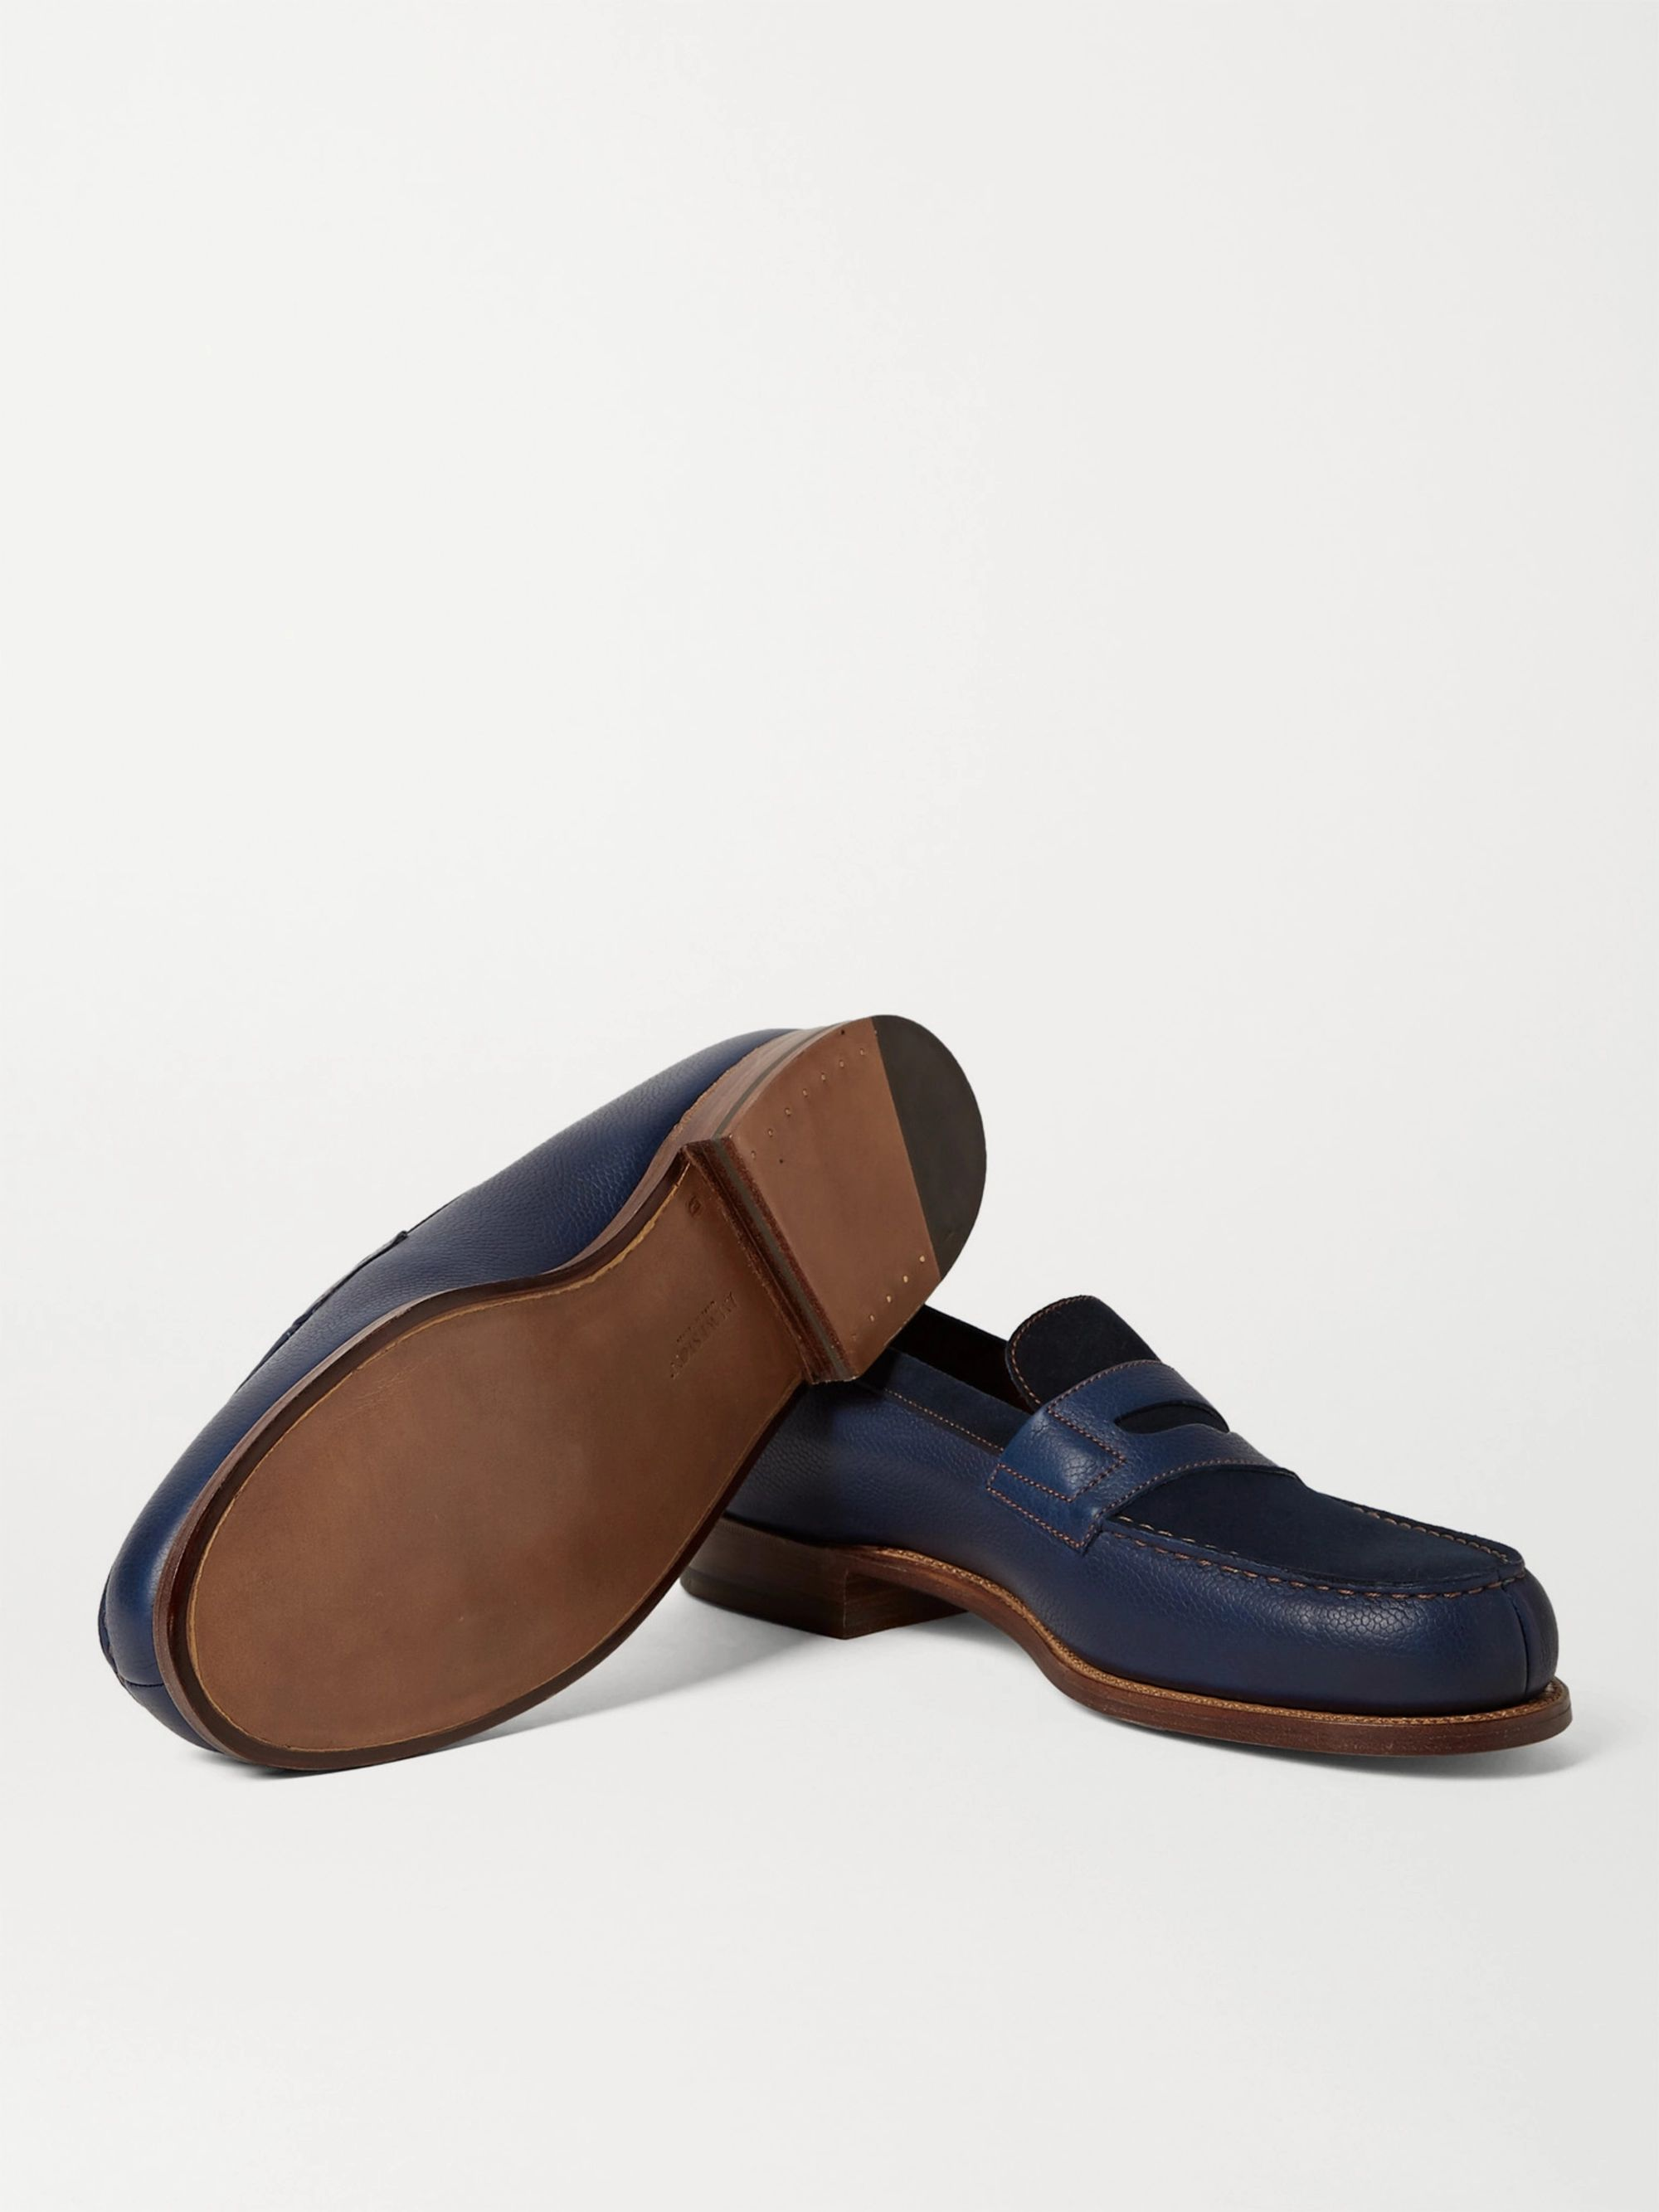 Storm blue 180 The Moccasin Full-Grain Leather and Suede ...